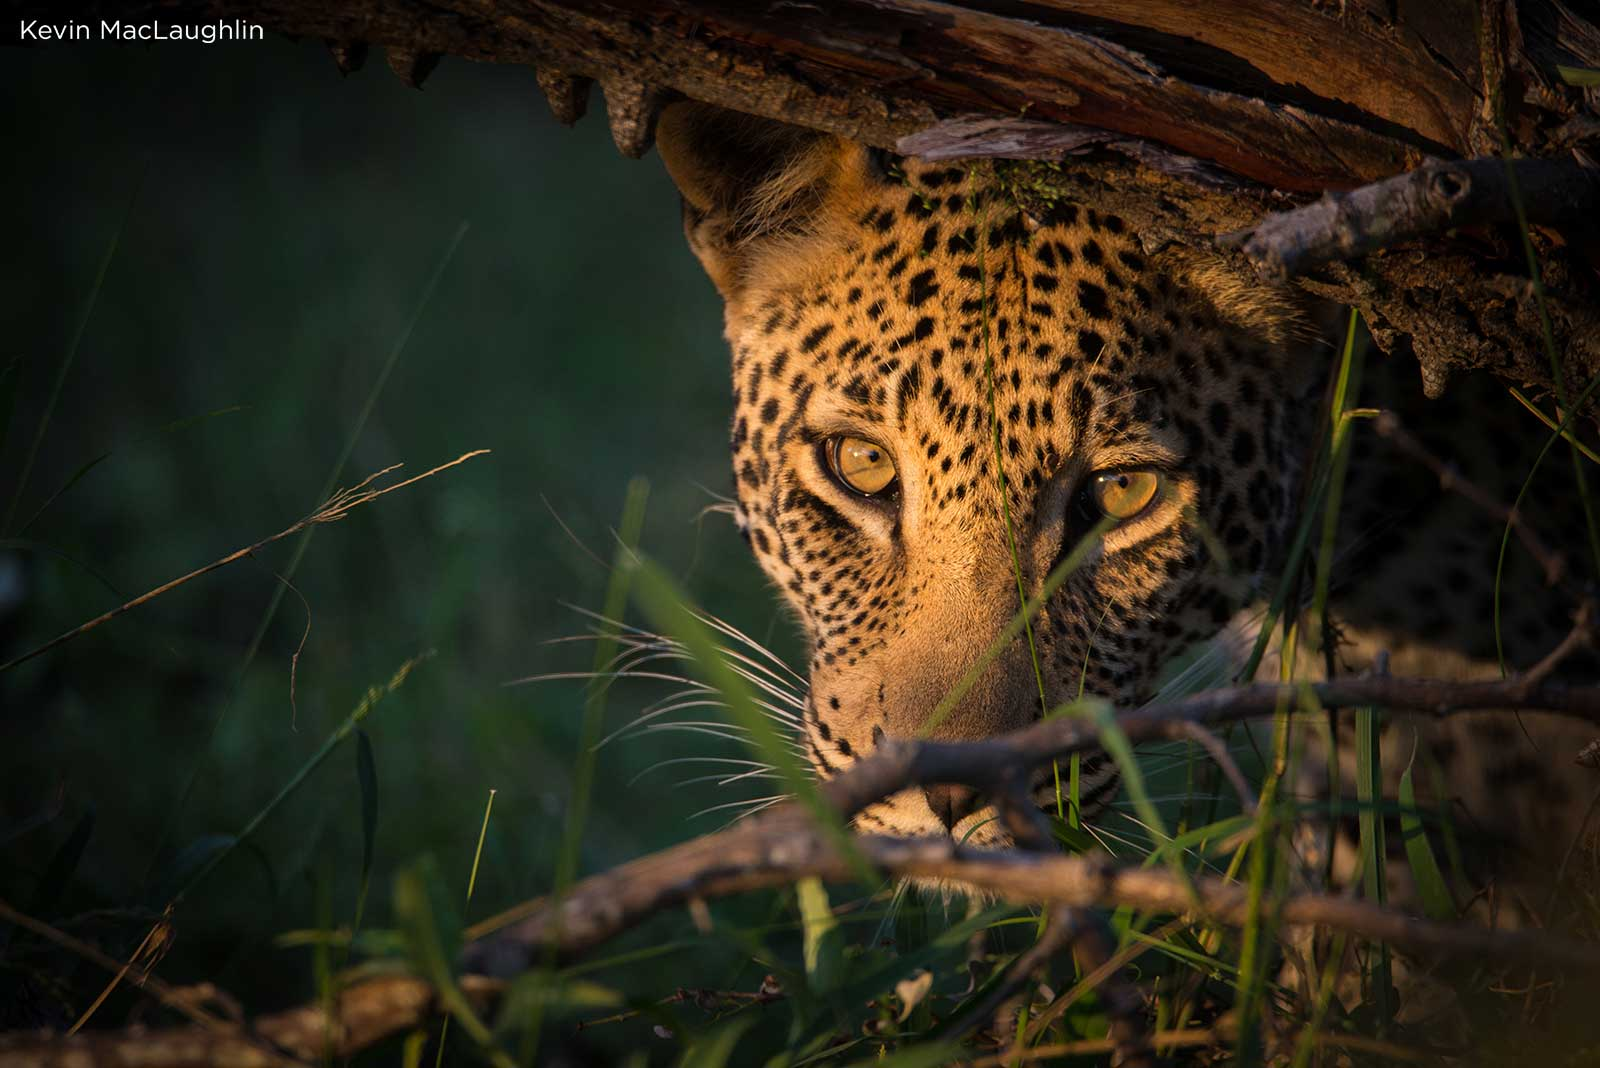 Golden-eyed leopard